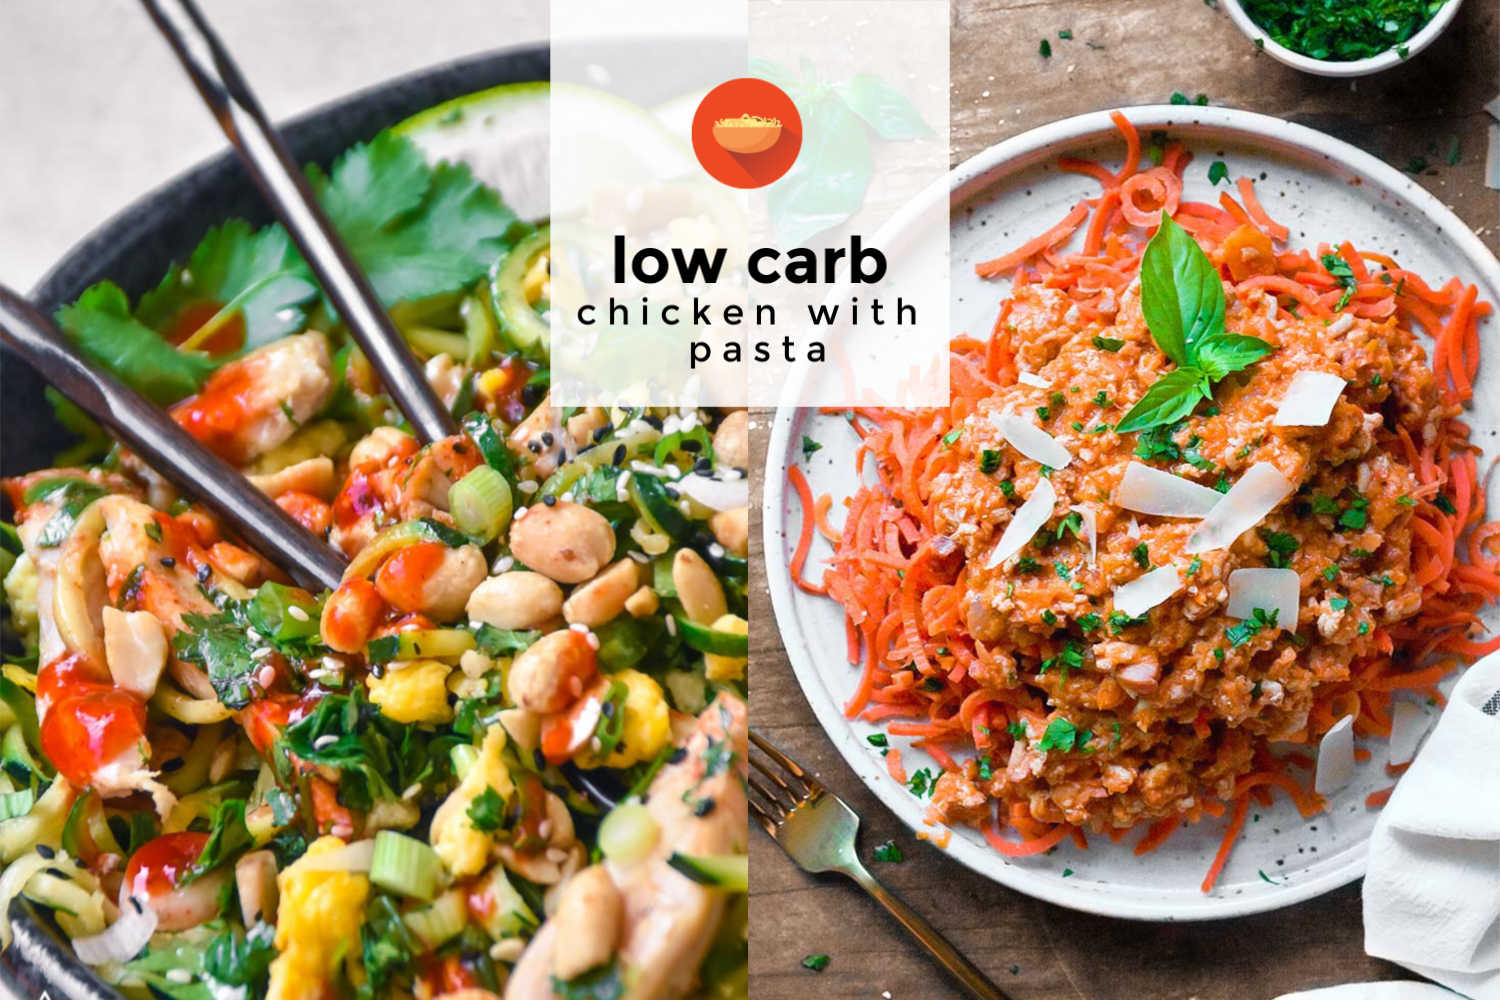 Low carb chicken with low carb pasta